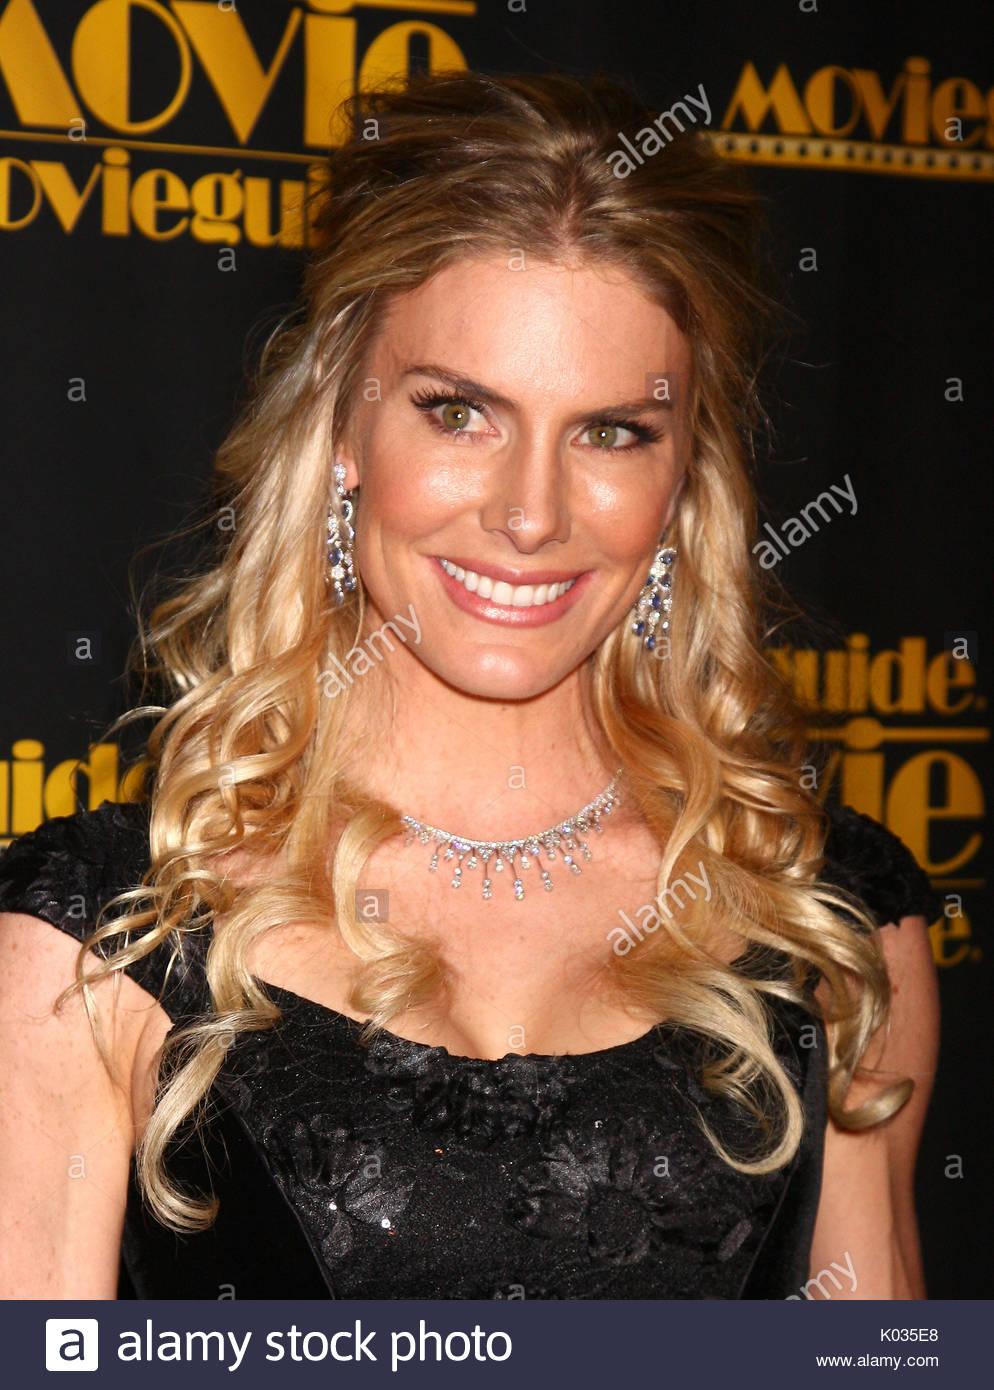 Discussion on this topic: Pat Priest (actress), kelly-greyson/